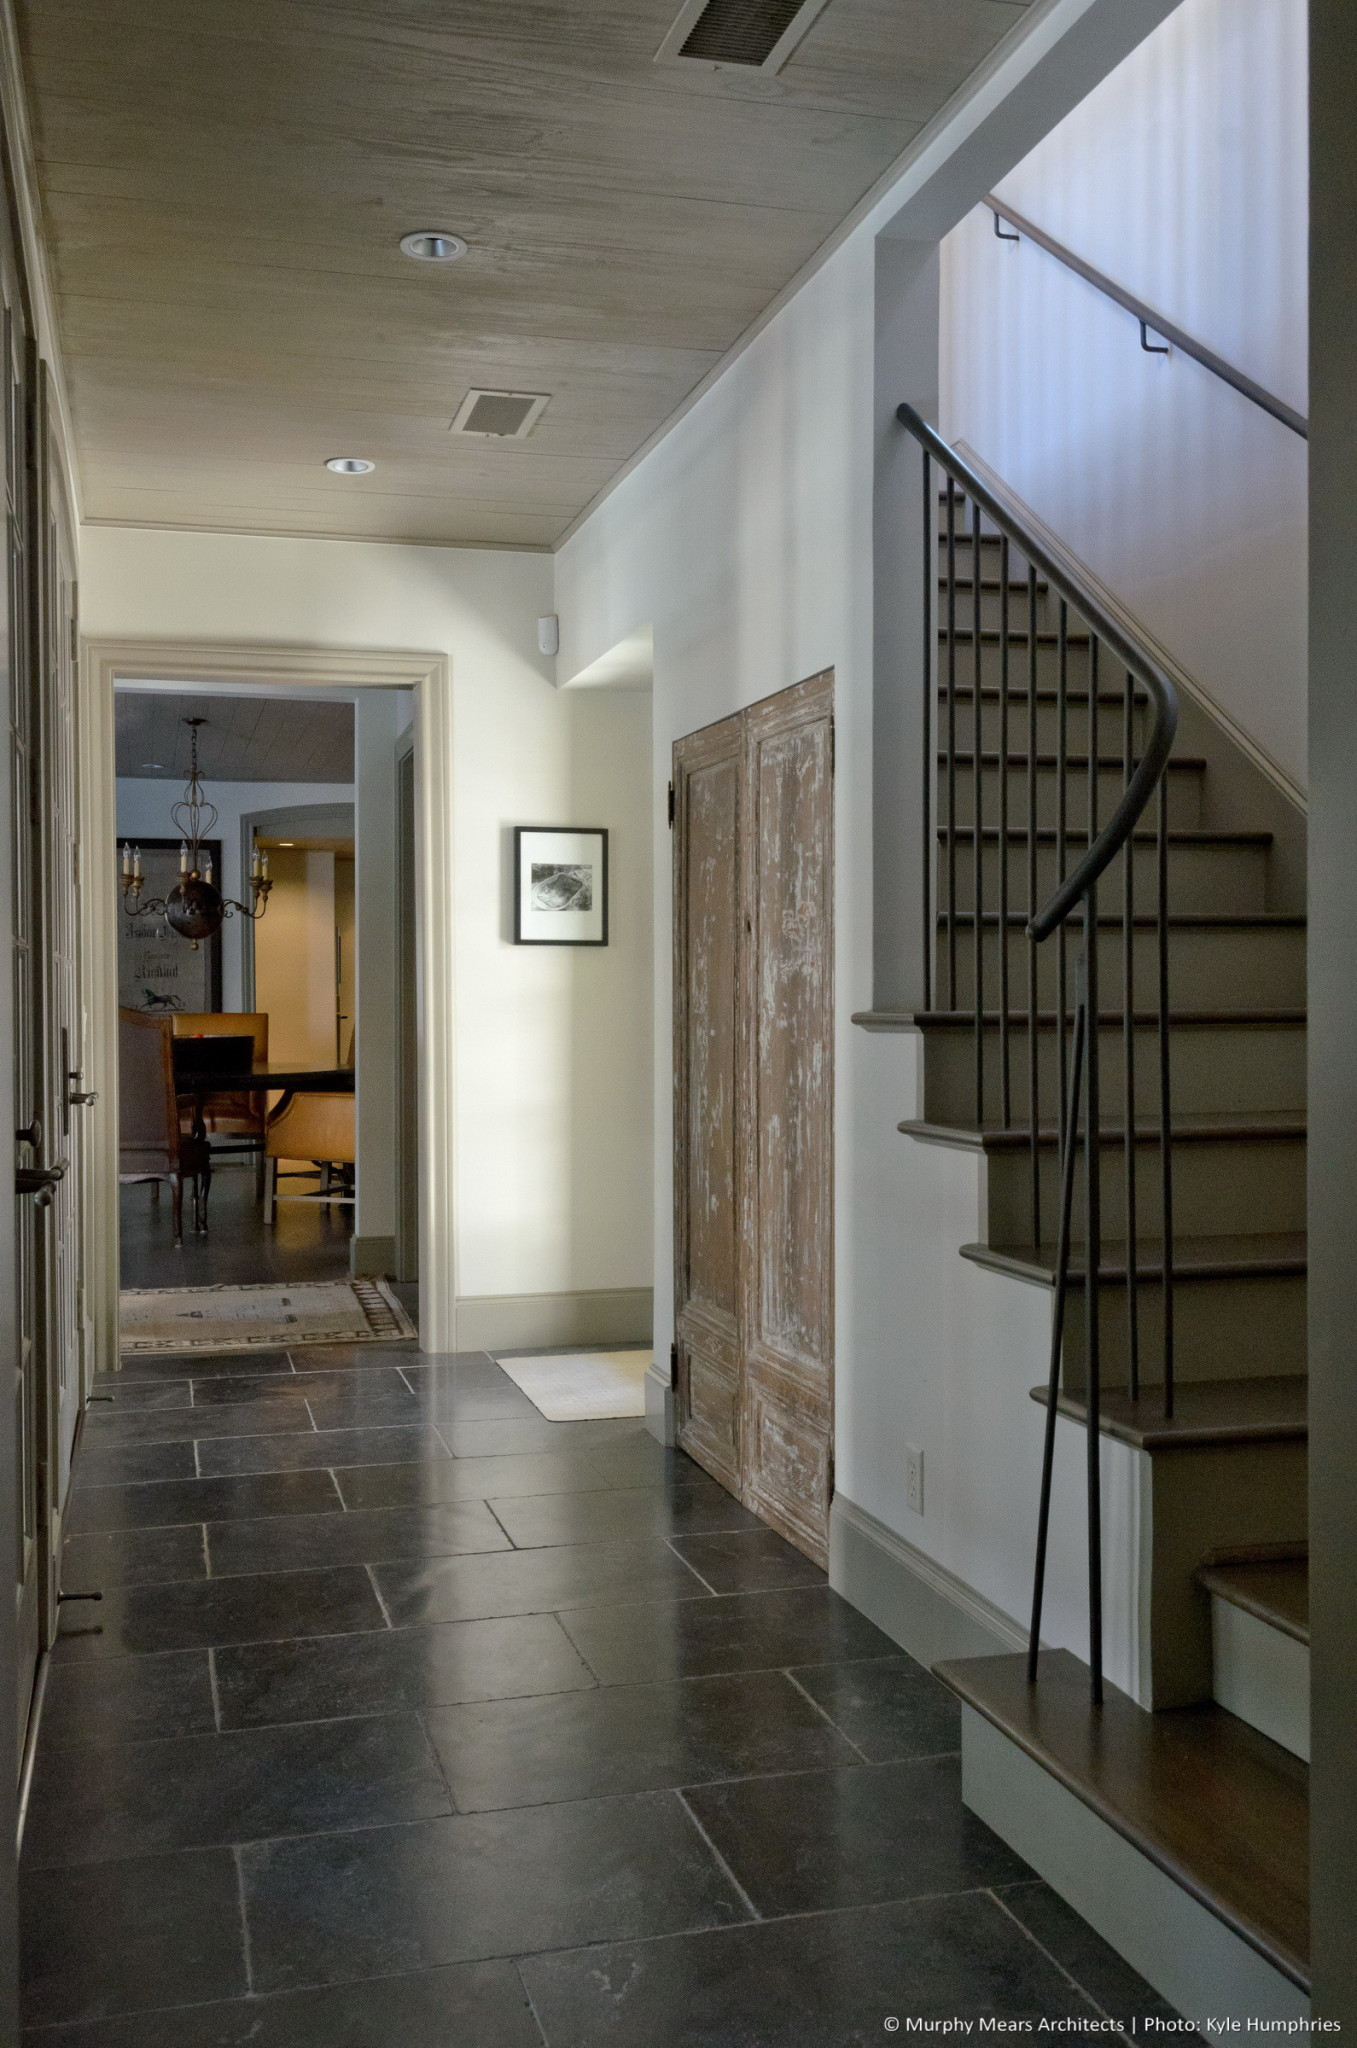 Pemberton Residence - New back hallway with stair leading to master suite above.